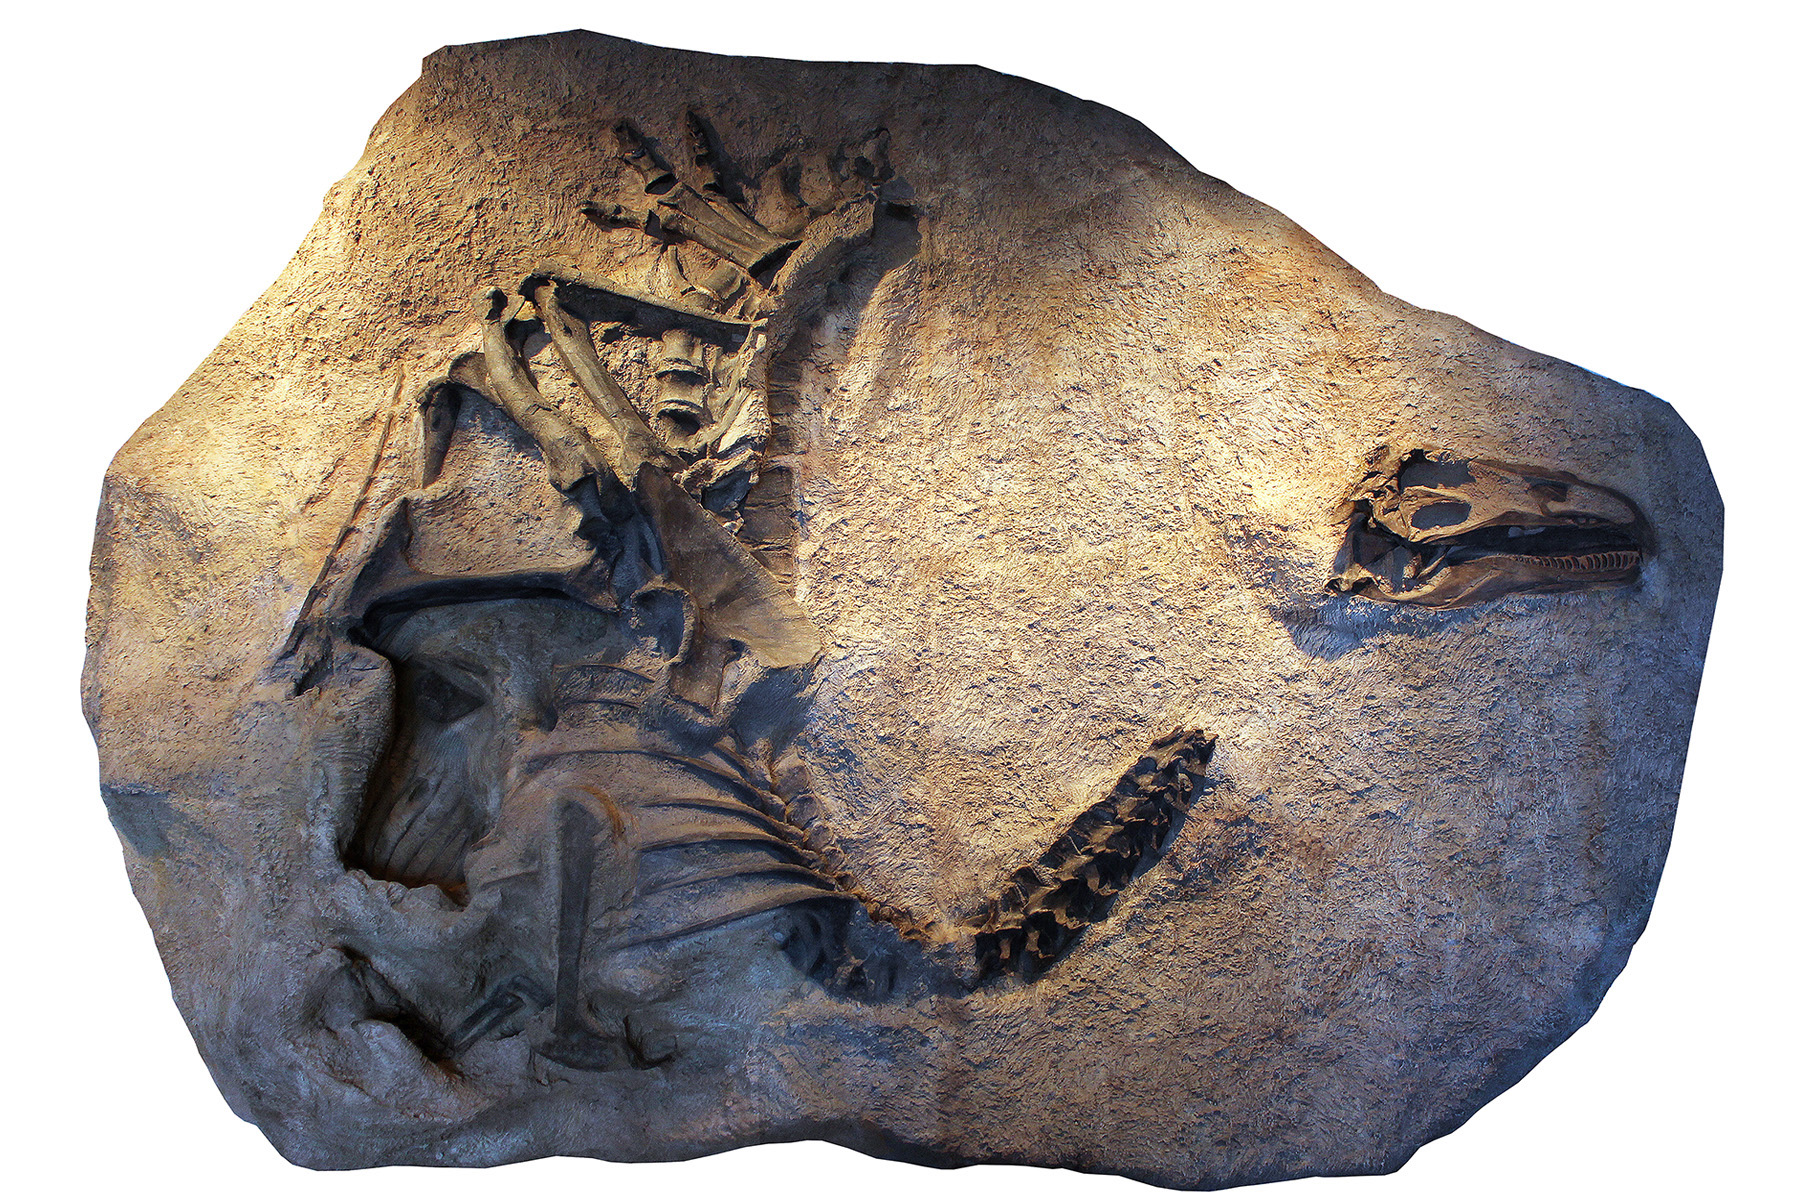 A cast of the skeleton and skull of Allosaurus jimmadseni as it was discovered and now on exhibit at Dinosaur National Monument in Utah.